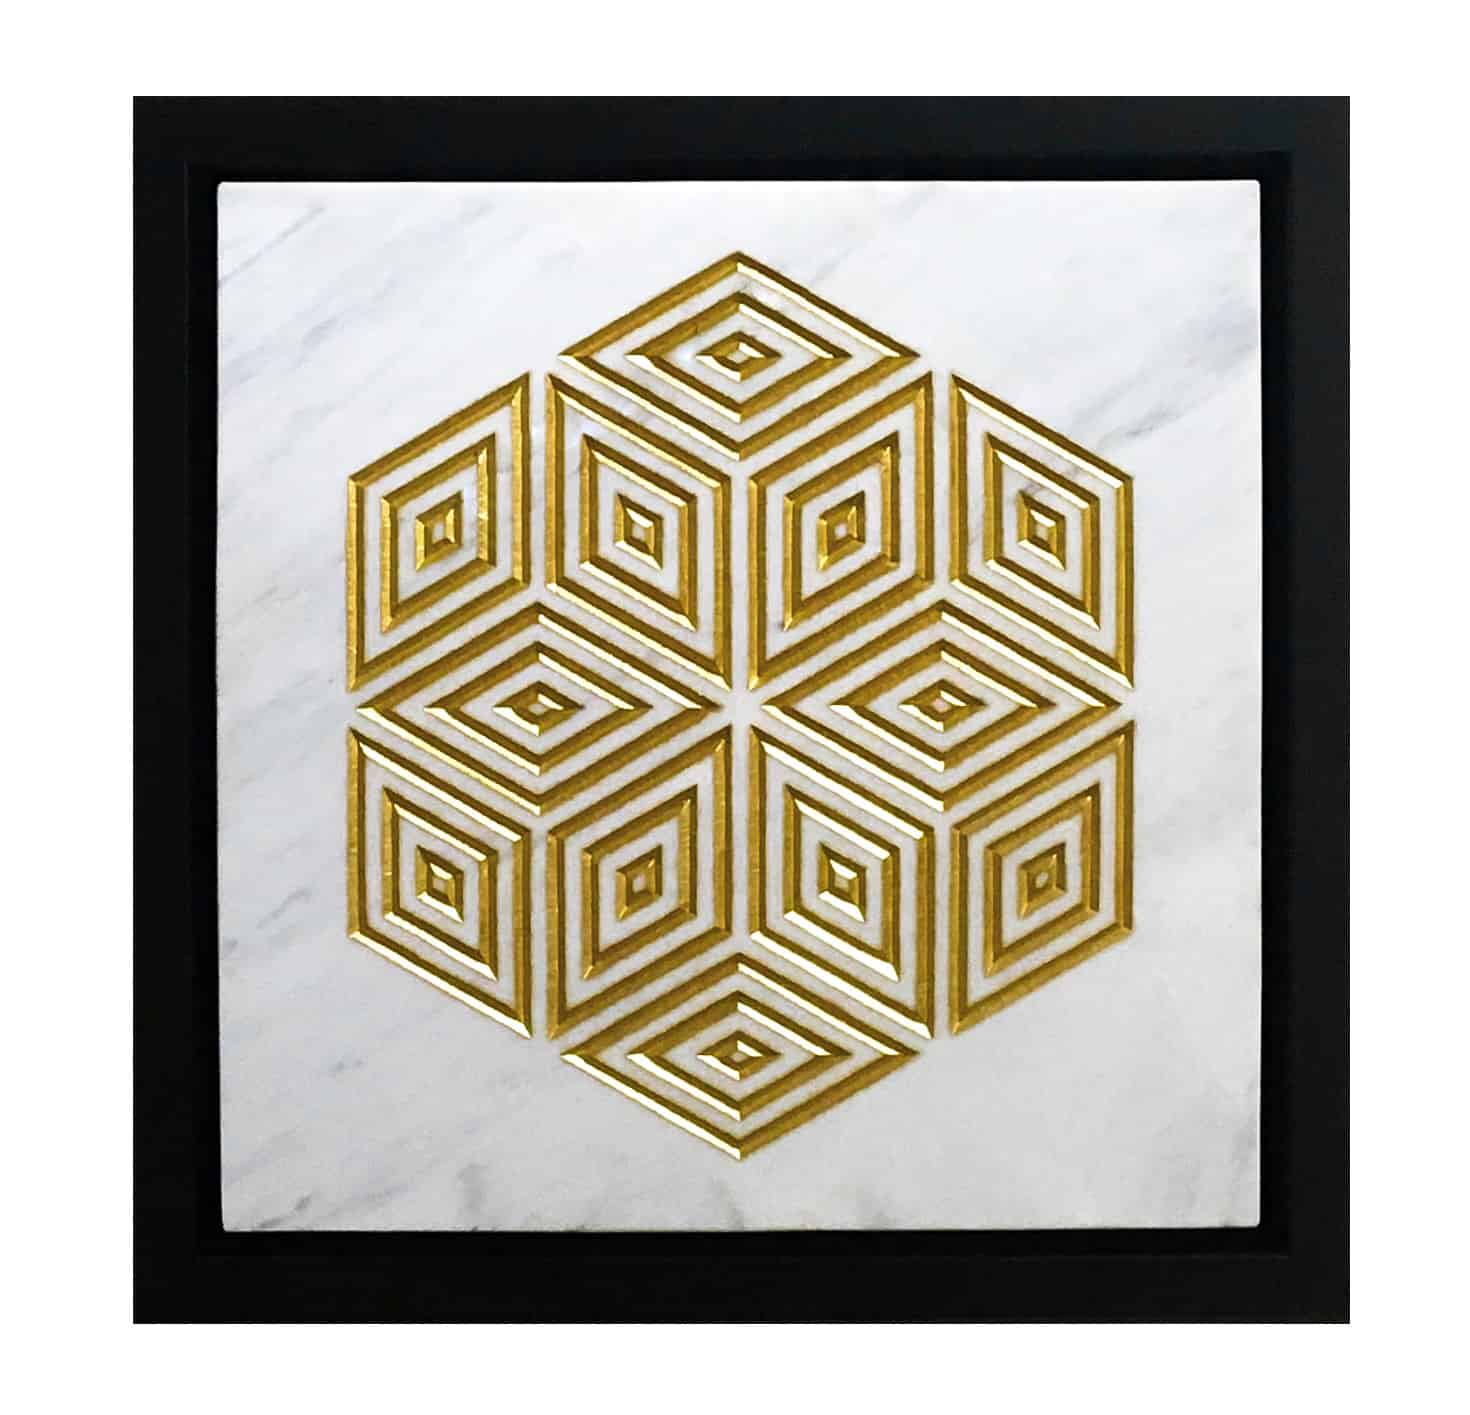 framed geometric pattern carved in white marble and gilded